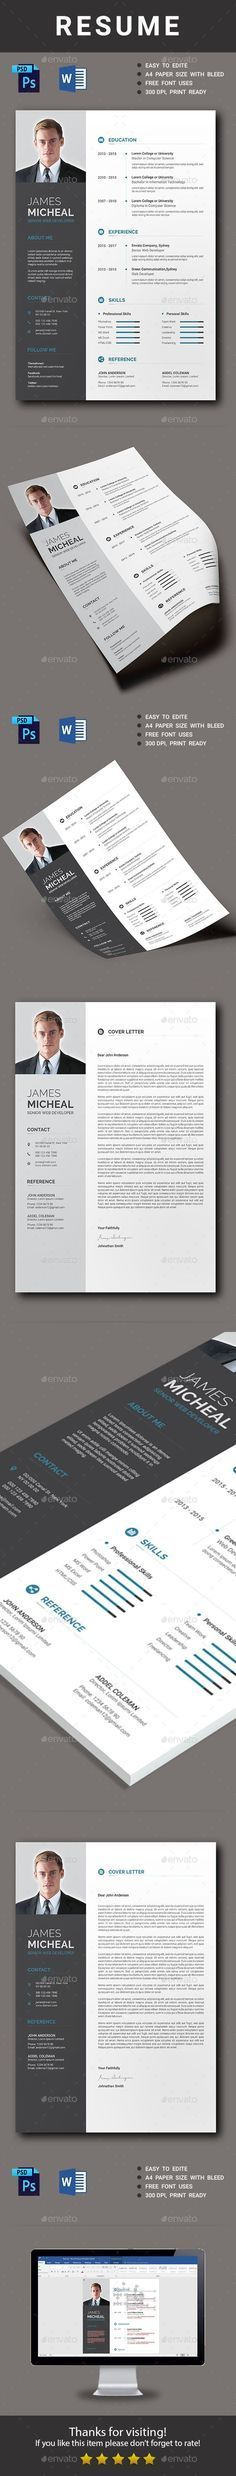 cashier resume format%0A Buy Resume by ResearchStudio on GraphicRiver  Professional Resume   CV  Template with super modern and professional look